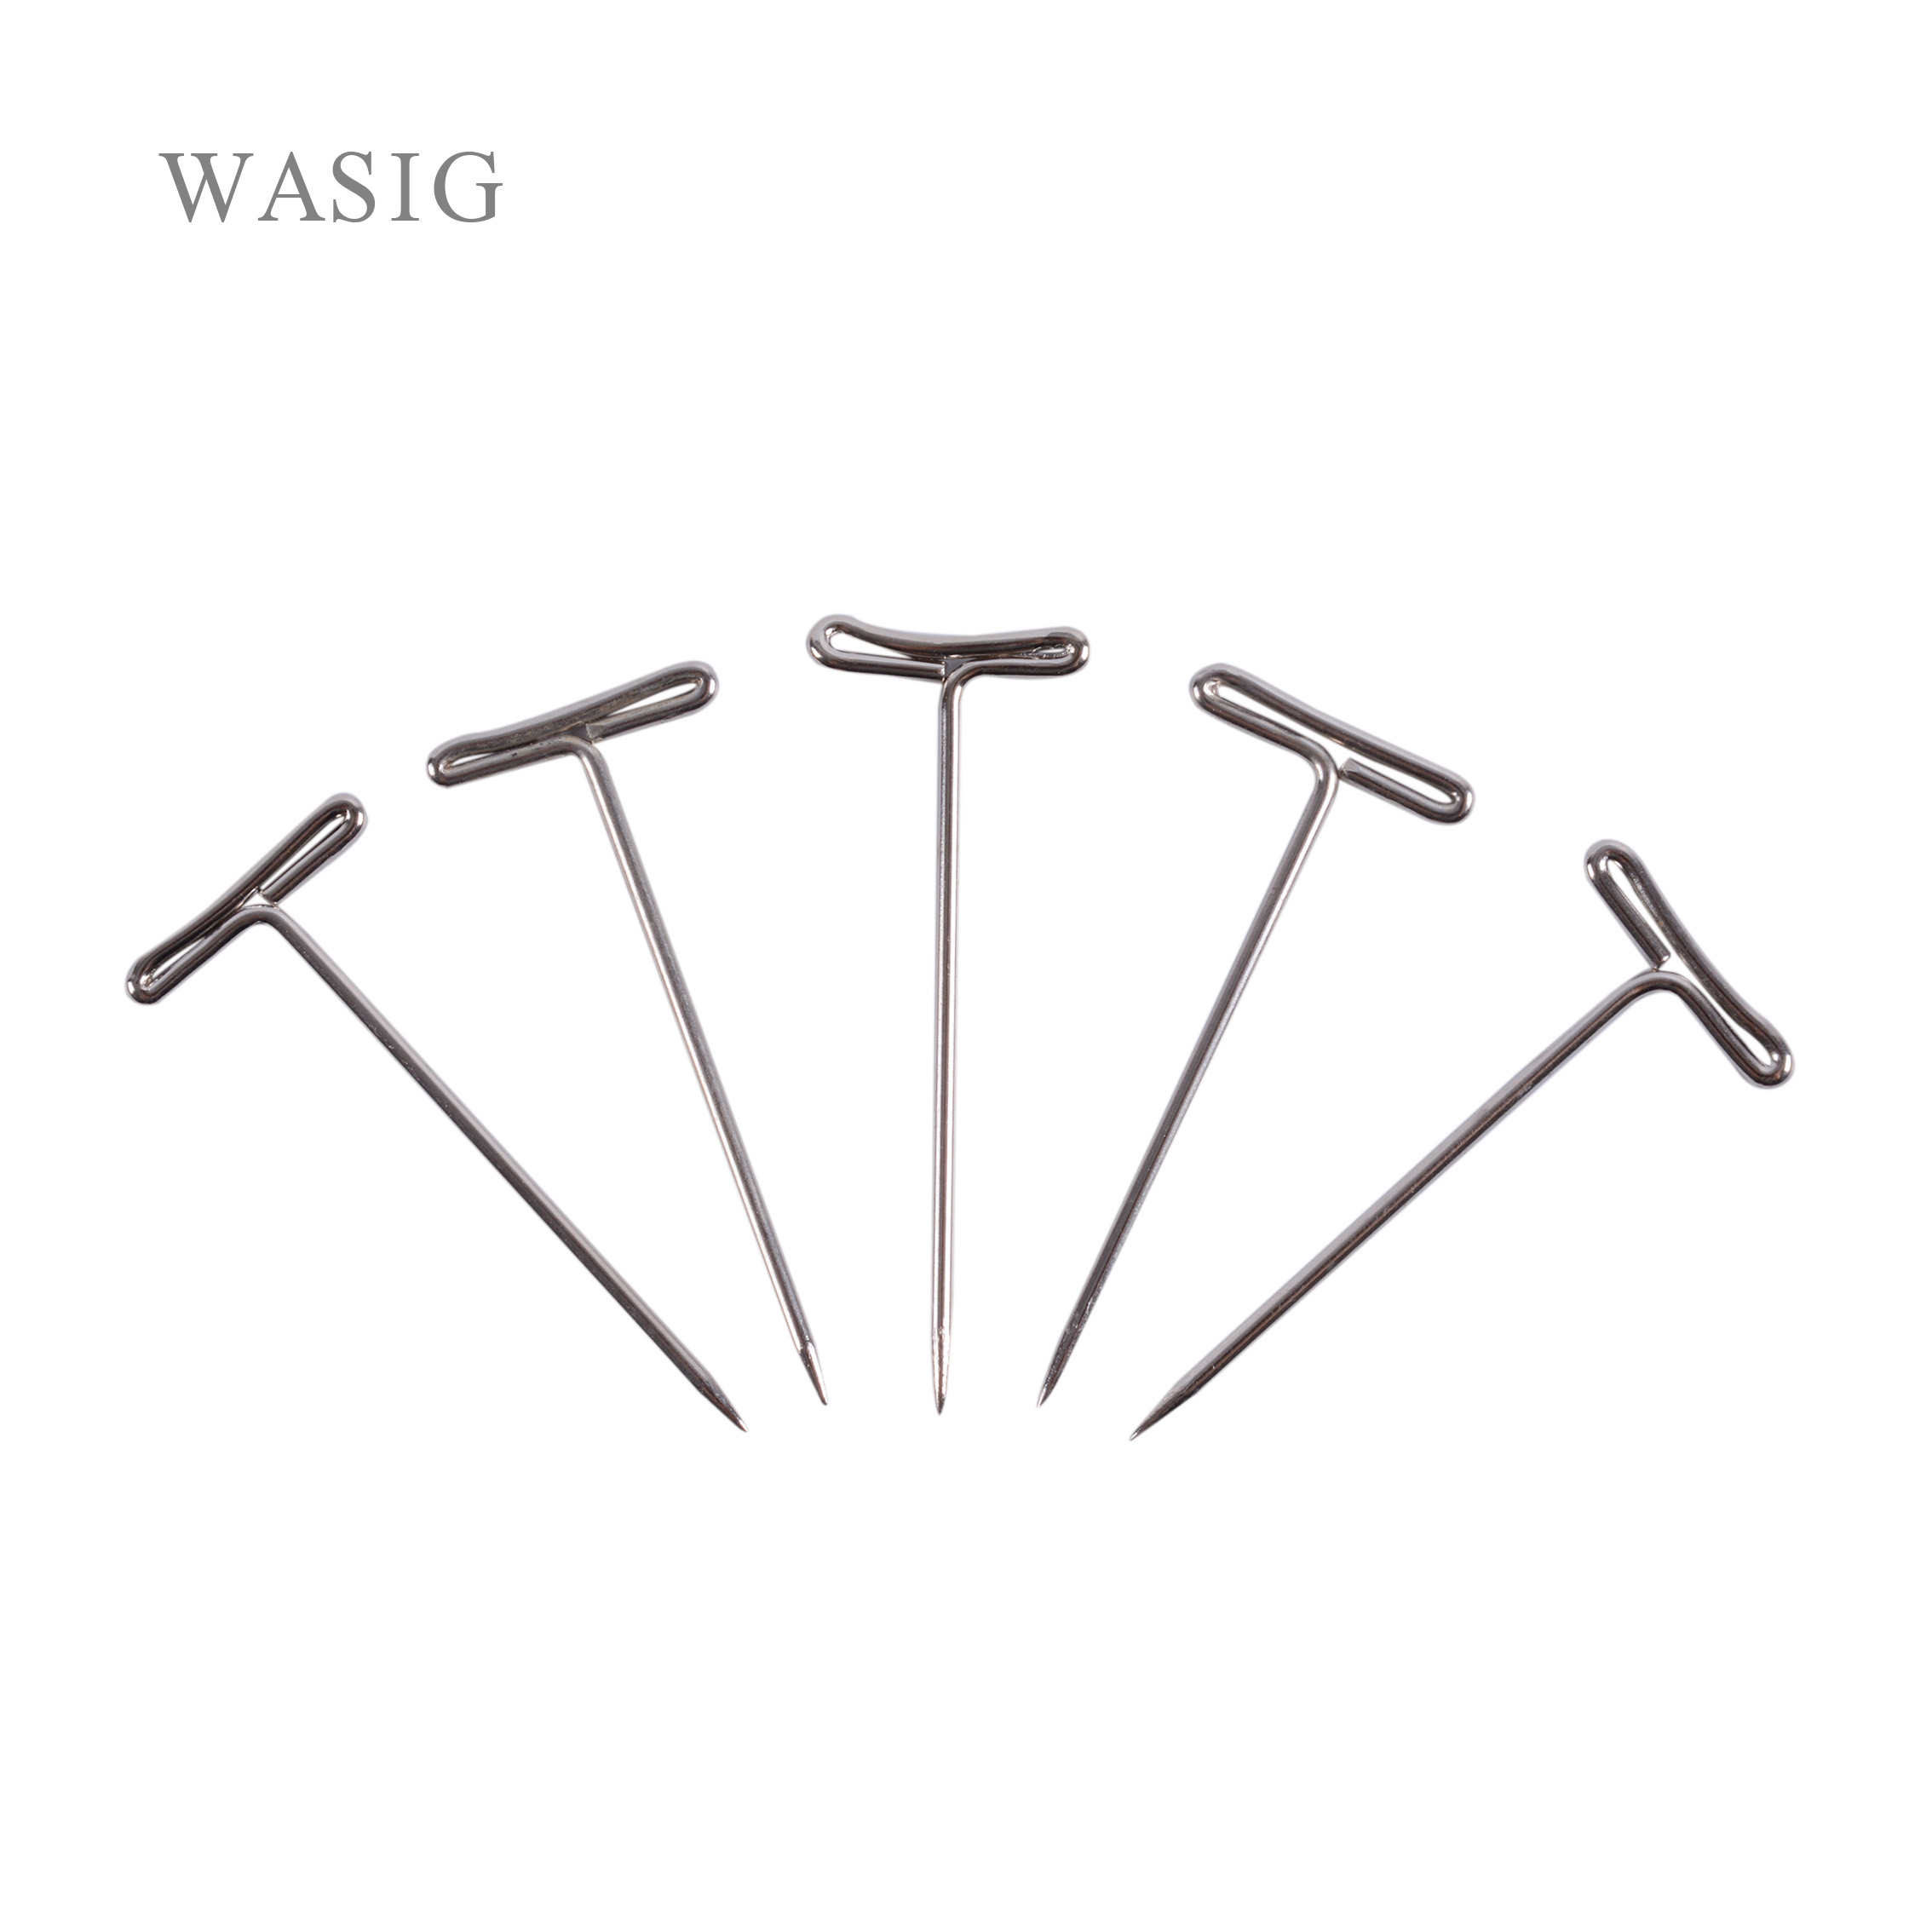 50pcs T-PINS (40mm) For Wig On Foam Head Style T Pin Needle Brazilian Indian Mannequin Head Type Sewing Hair Salon